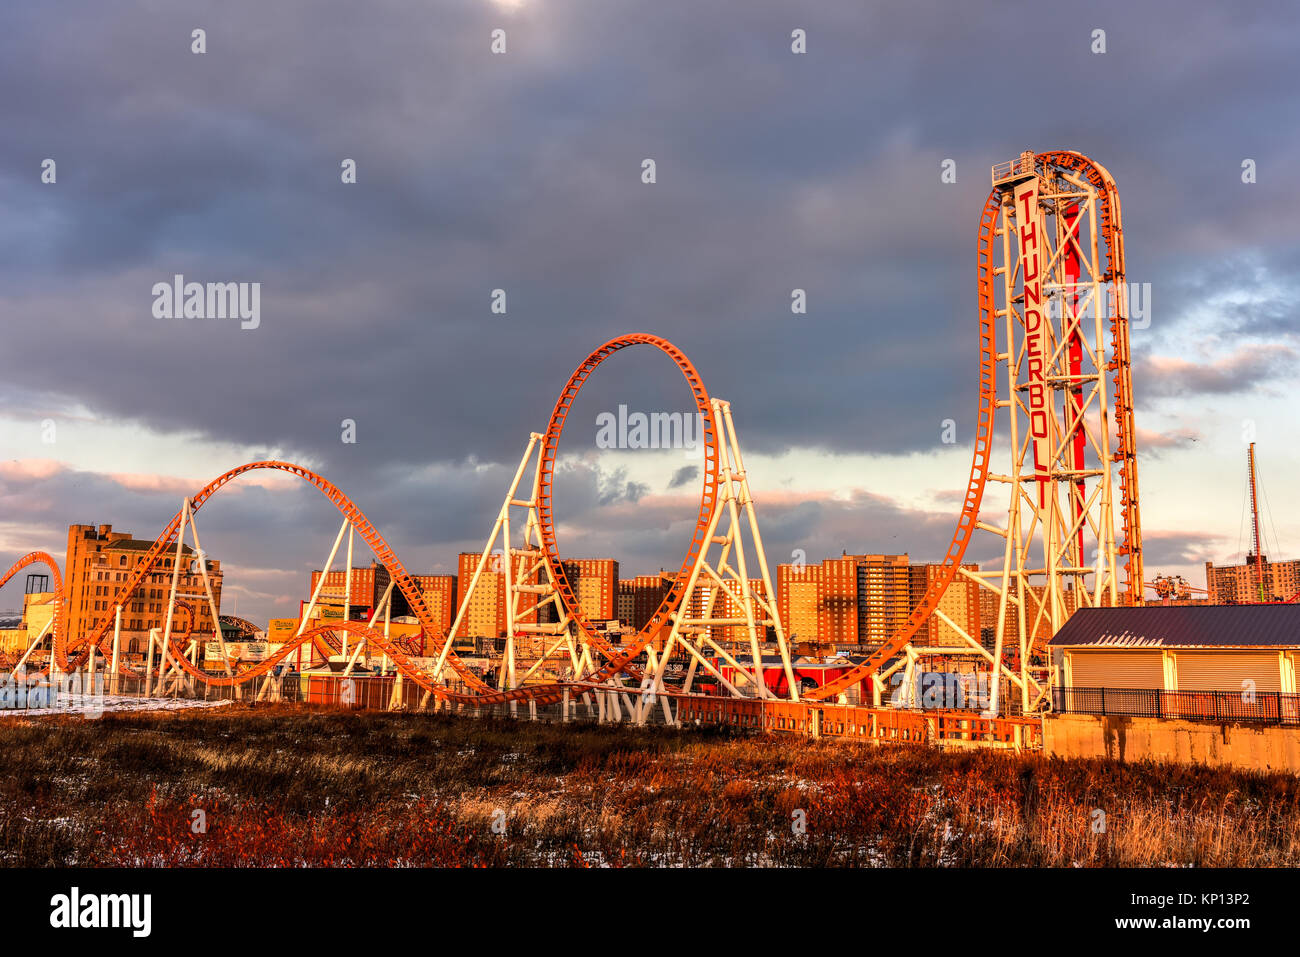 Brooklyn, New York - Dec 10, 2017: Thunderbolt Rollercoaster in Coney Island, Brooklyn, New York City at sunset. Stock Photo